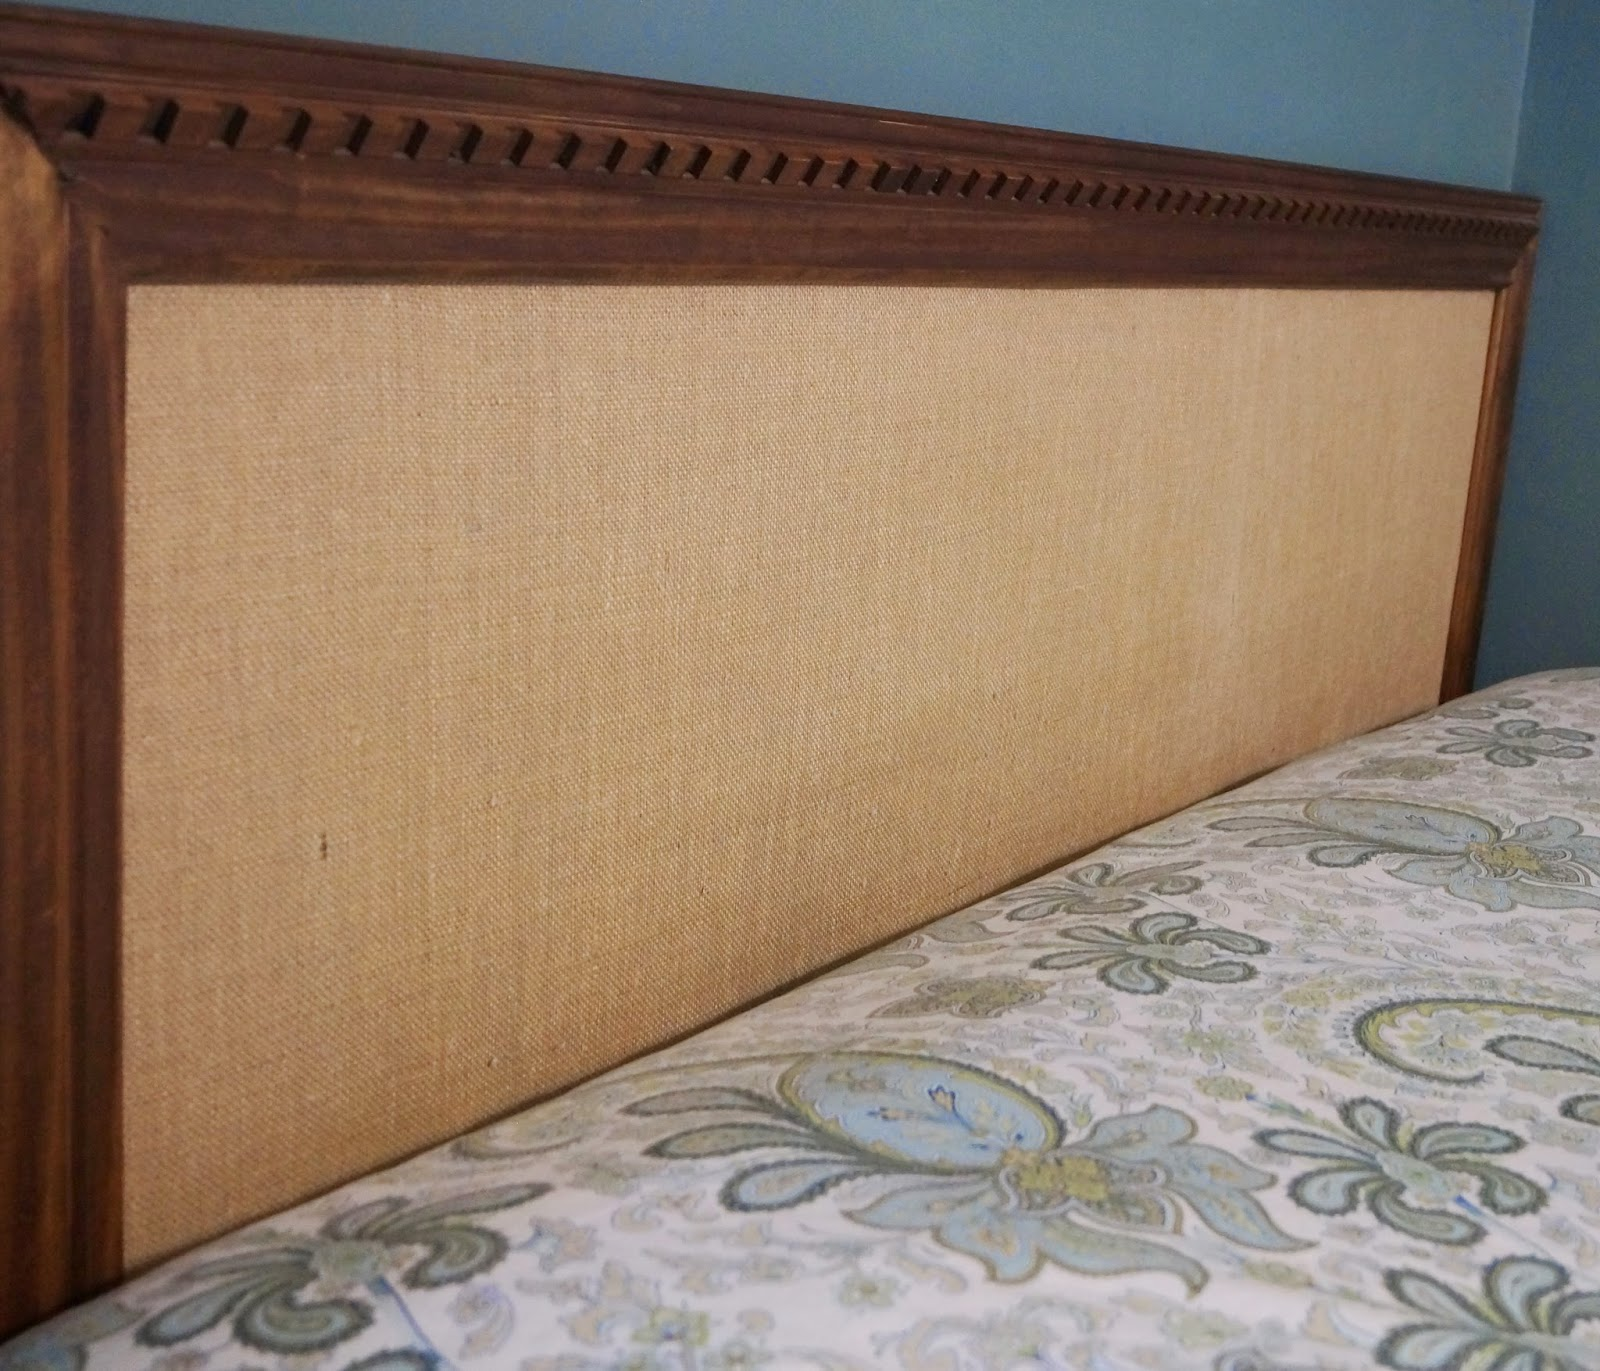 Spectacular burlap and wood trim easy headboard no tools required Do Not Disturb This Groove on